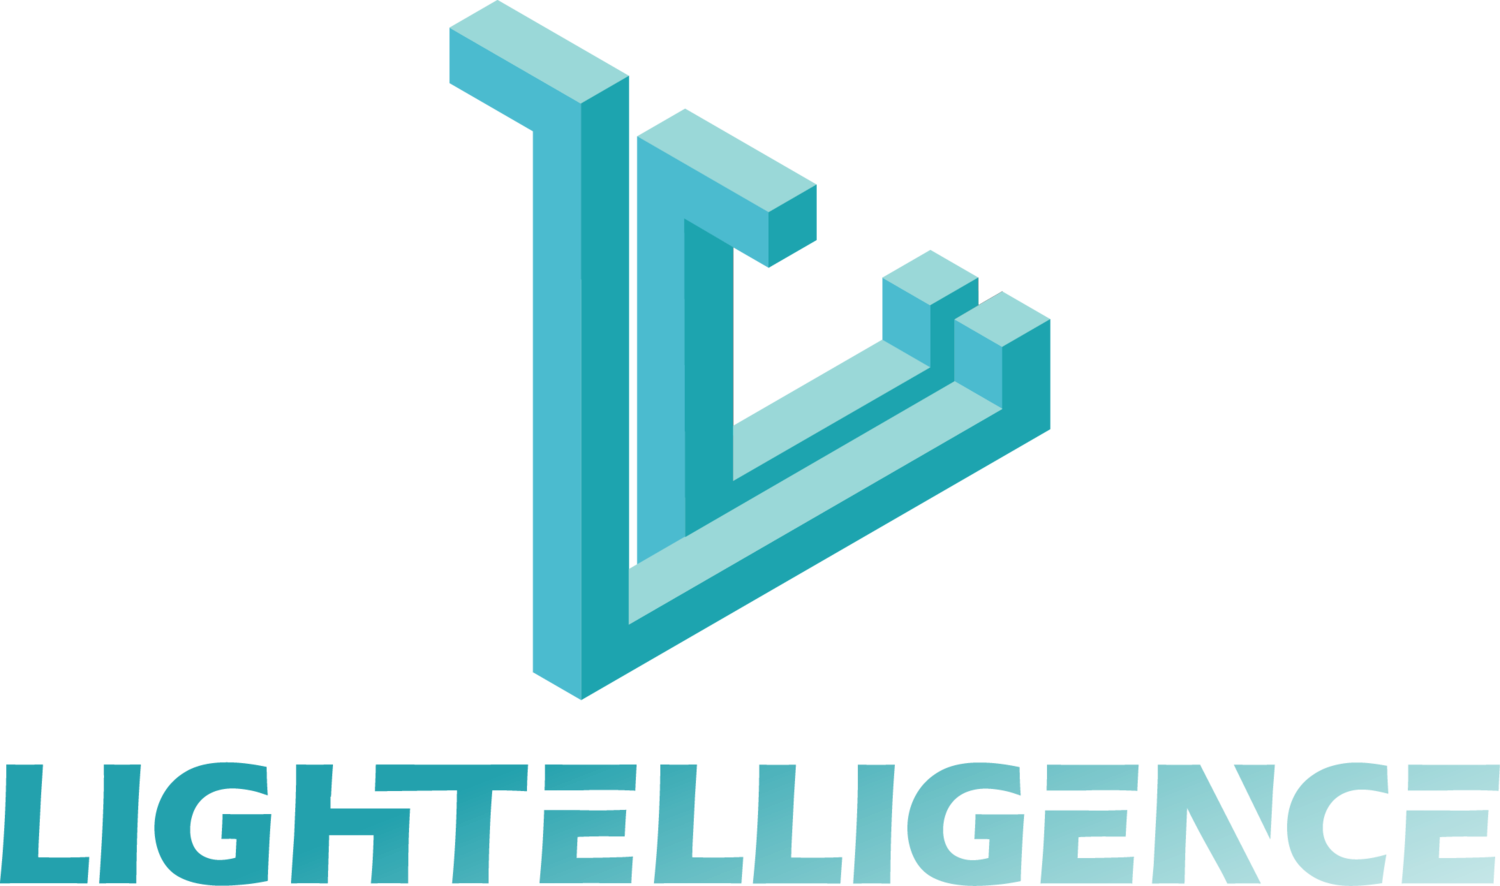 Lightelligence - Empower AI with light